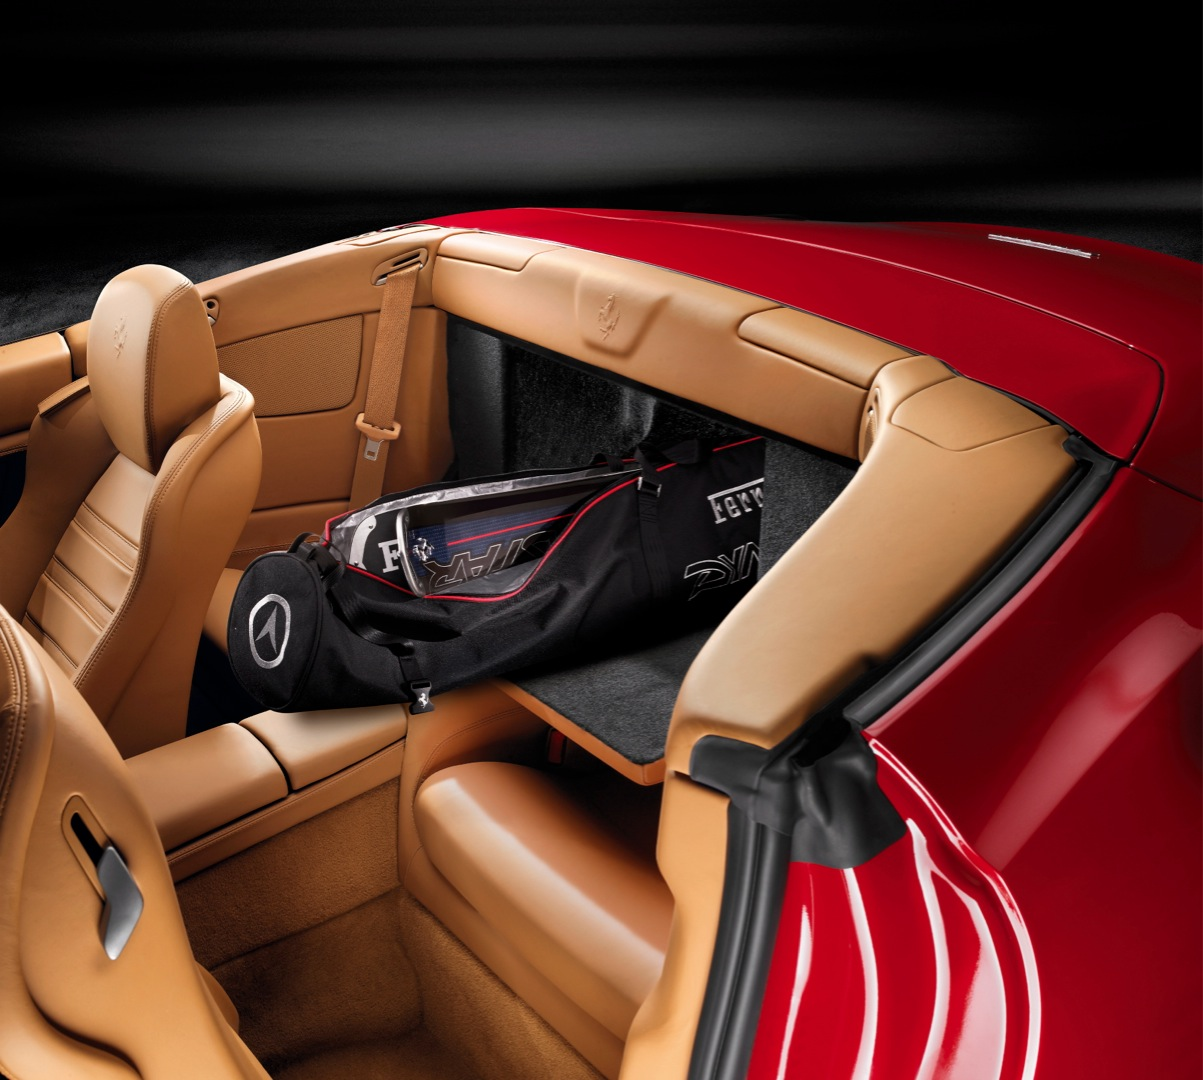 2016 Ferrari California Interior: 2012, 2013, 2014, 2015, 2016